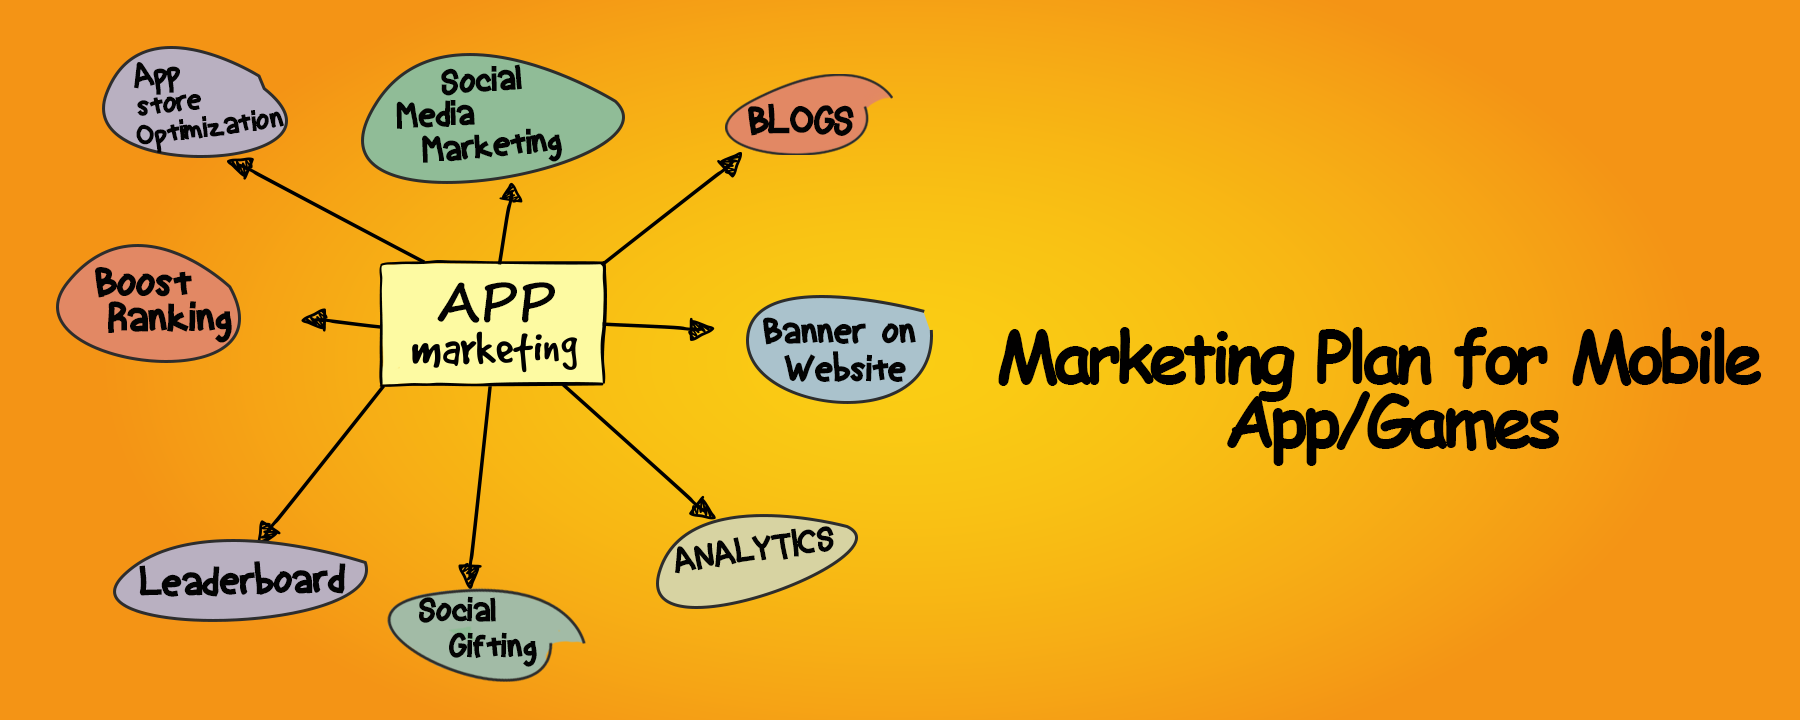 Marketing Plan for Mobile Games